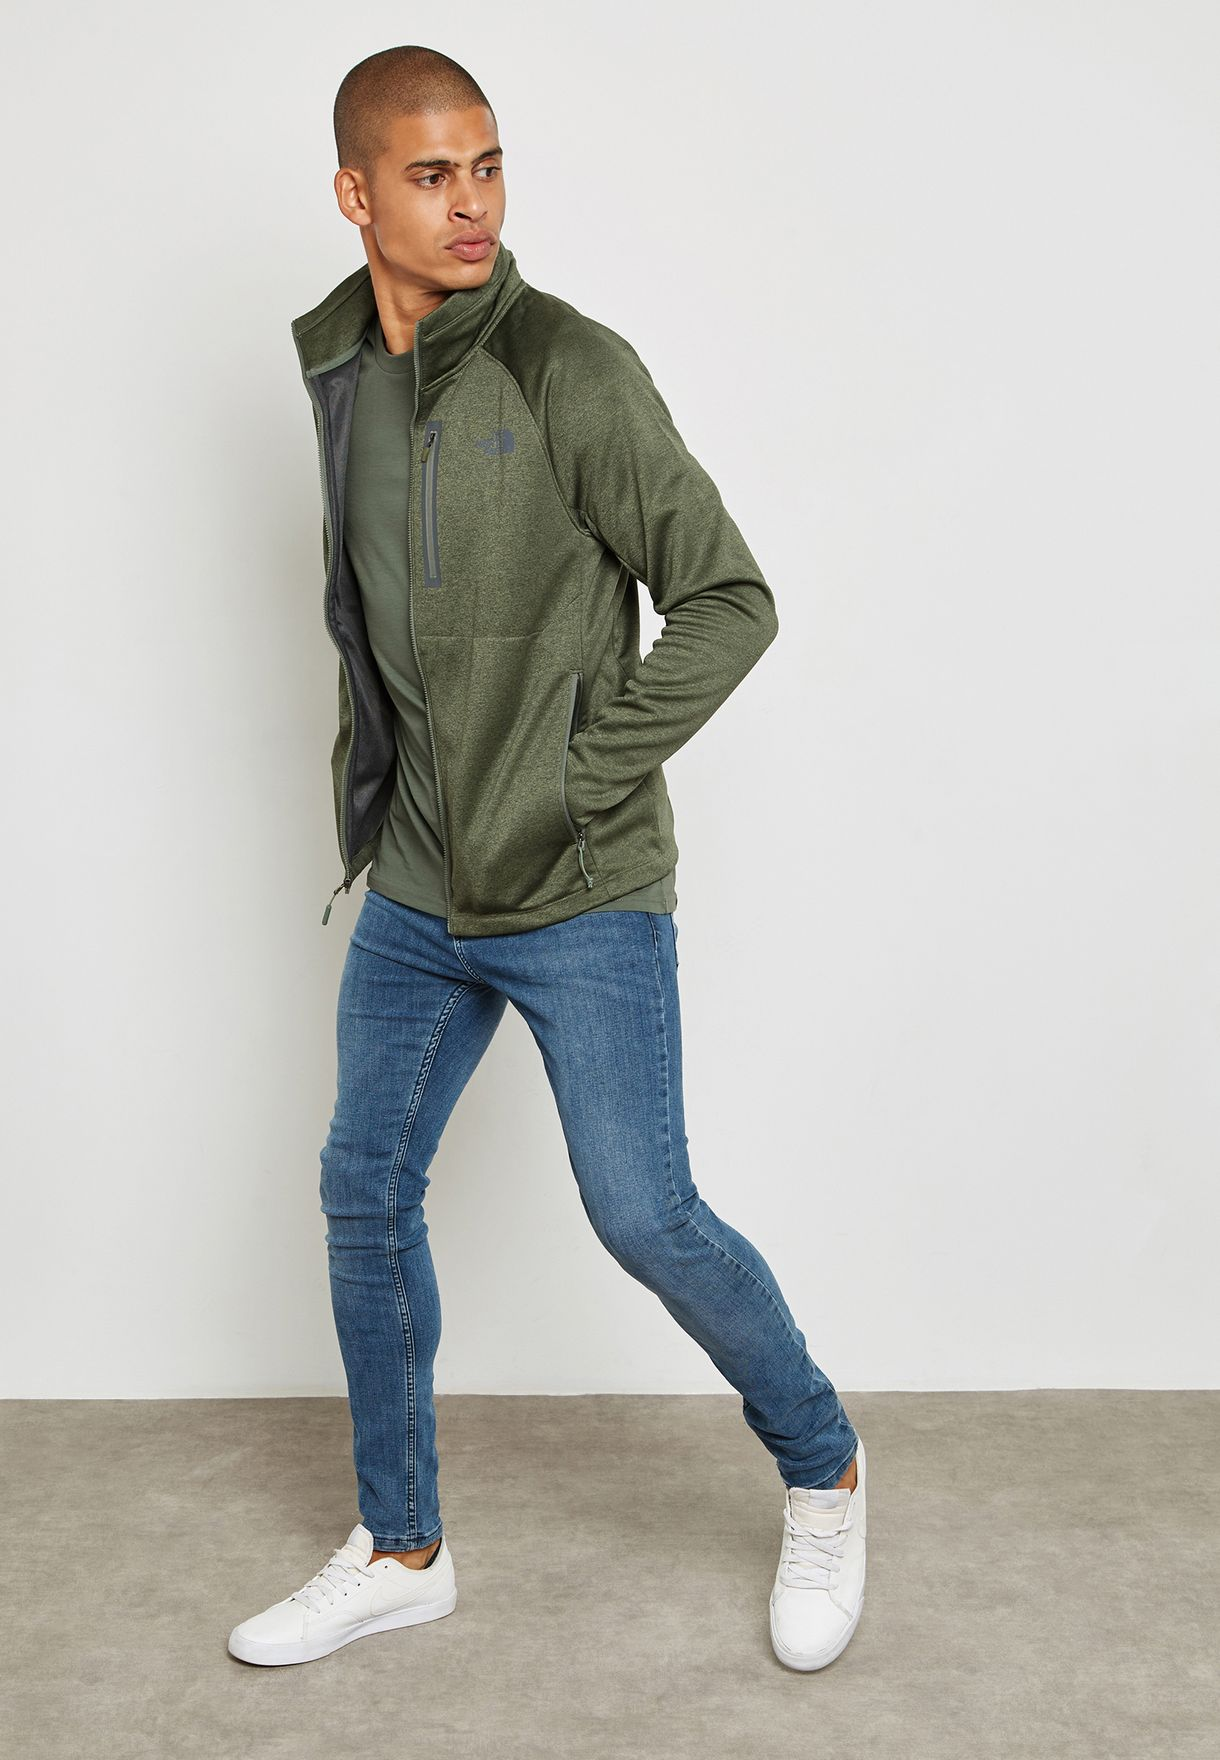 8321addd7708 Shop The North Face green Canyonlands Jacket NOT92ZVV-QCV for ...